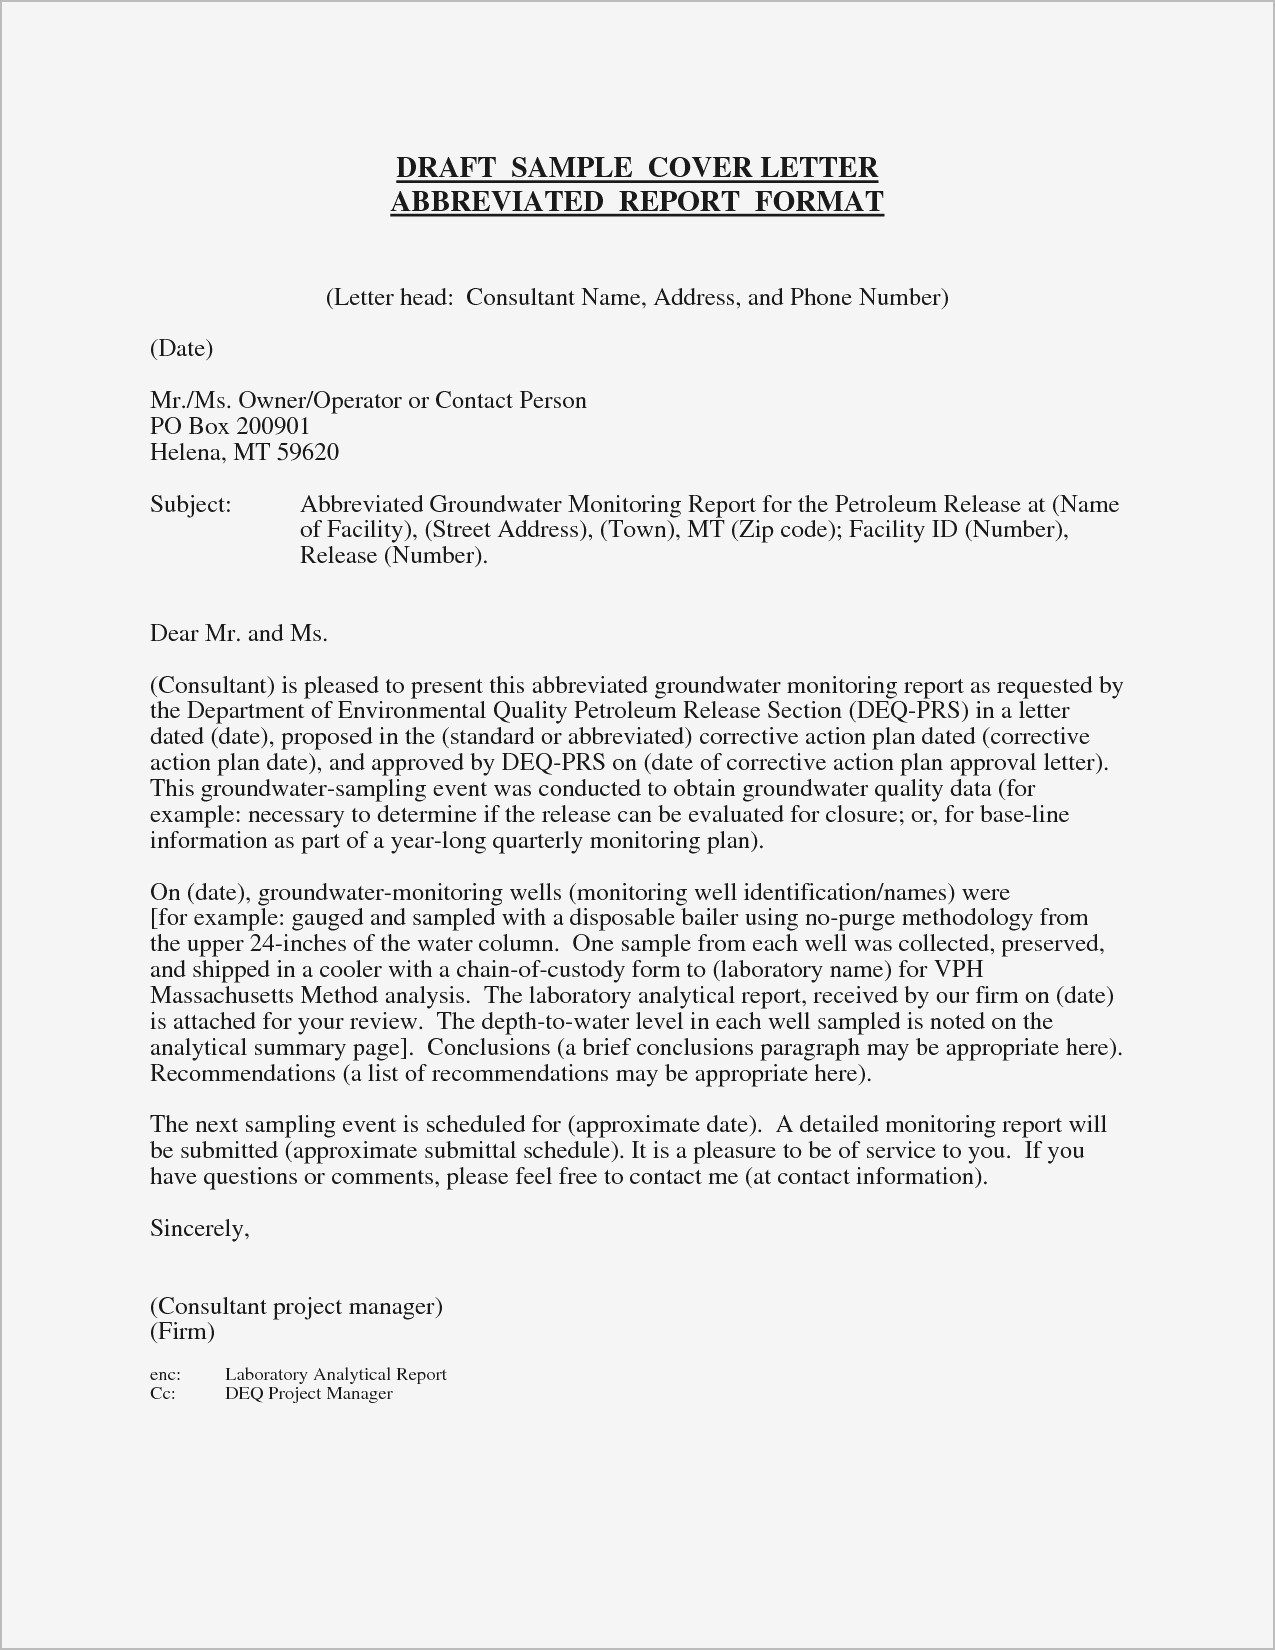 Cover Letter Template Pdf Free - Cover Letter Templats Personalinjurylovete